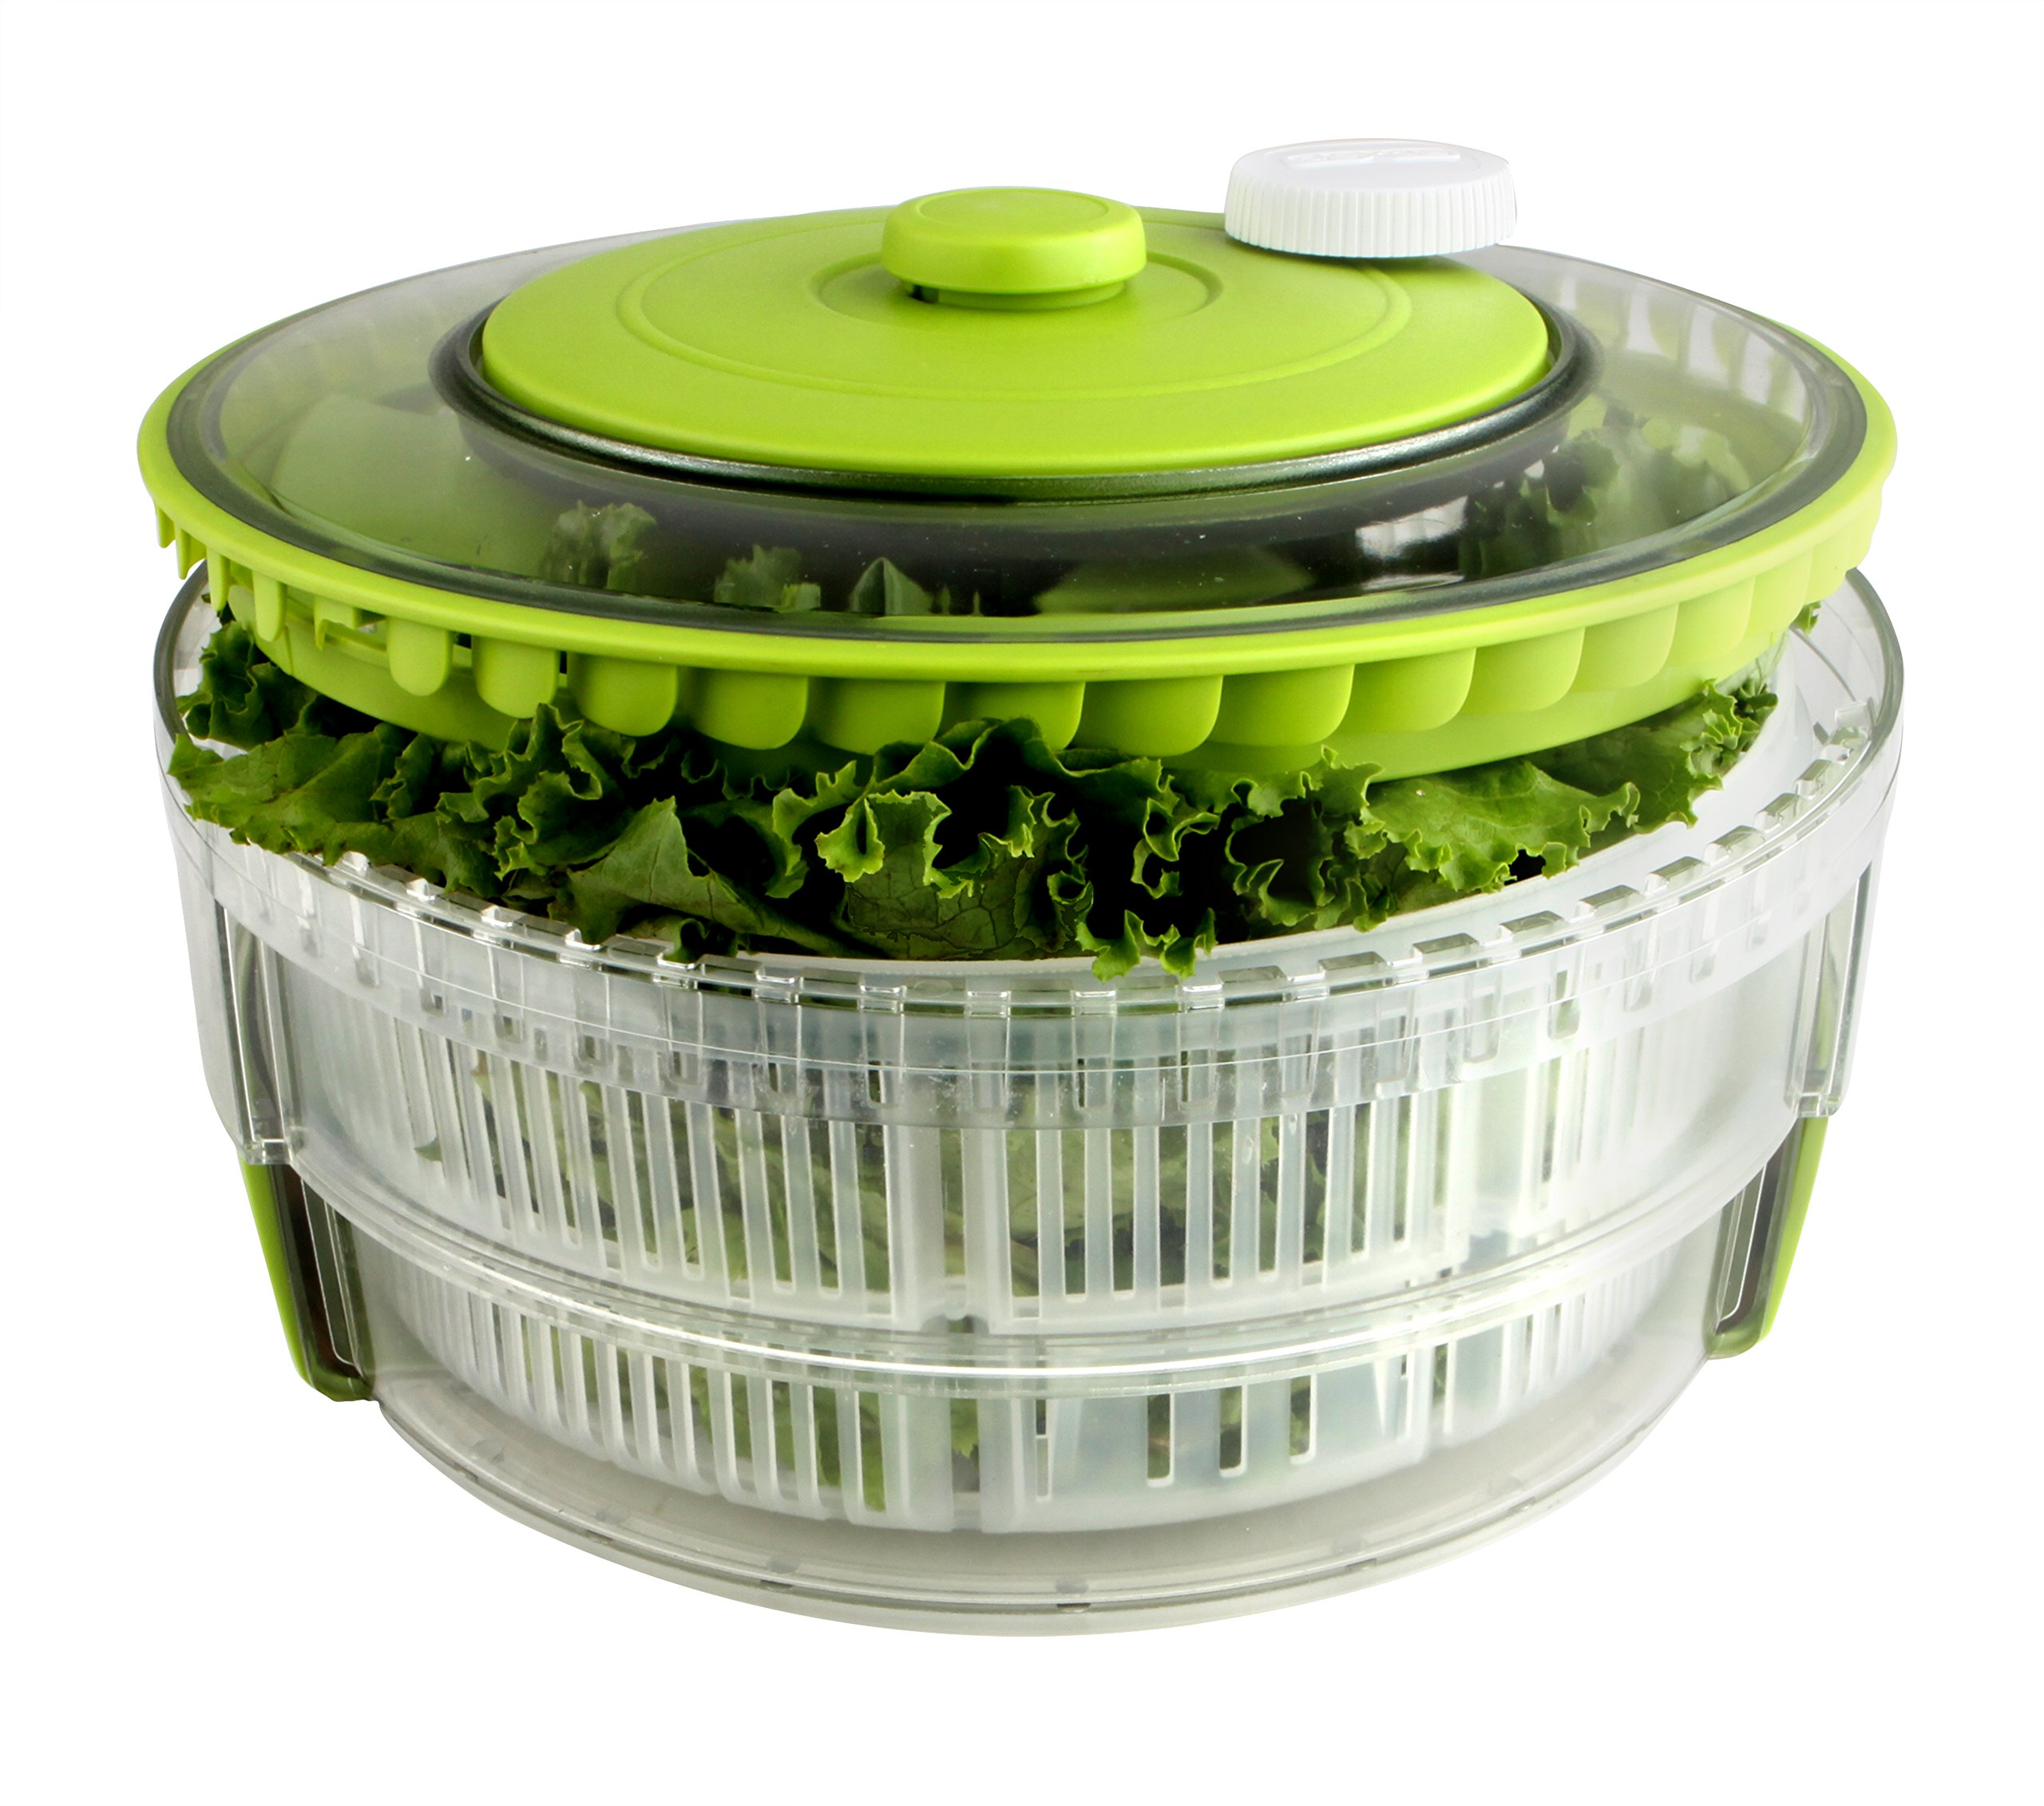 Dexas Turbo Fan Collapsible Salad Spinner, Natural/Green